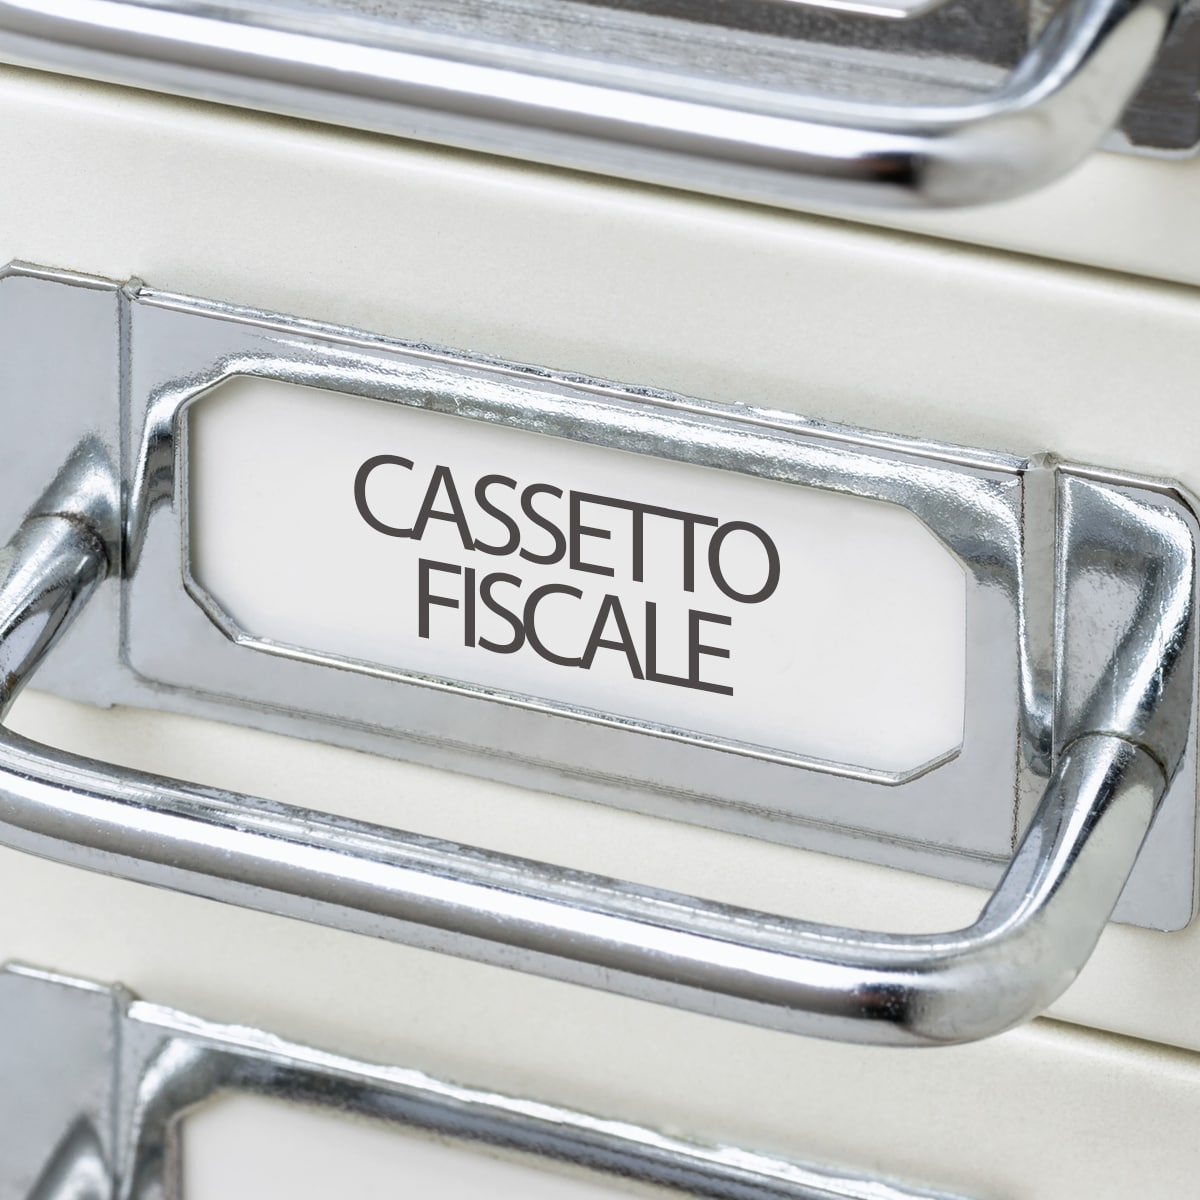 Cosa è e come si usa il cassetto fiscale